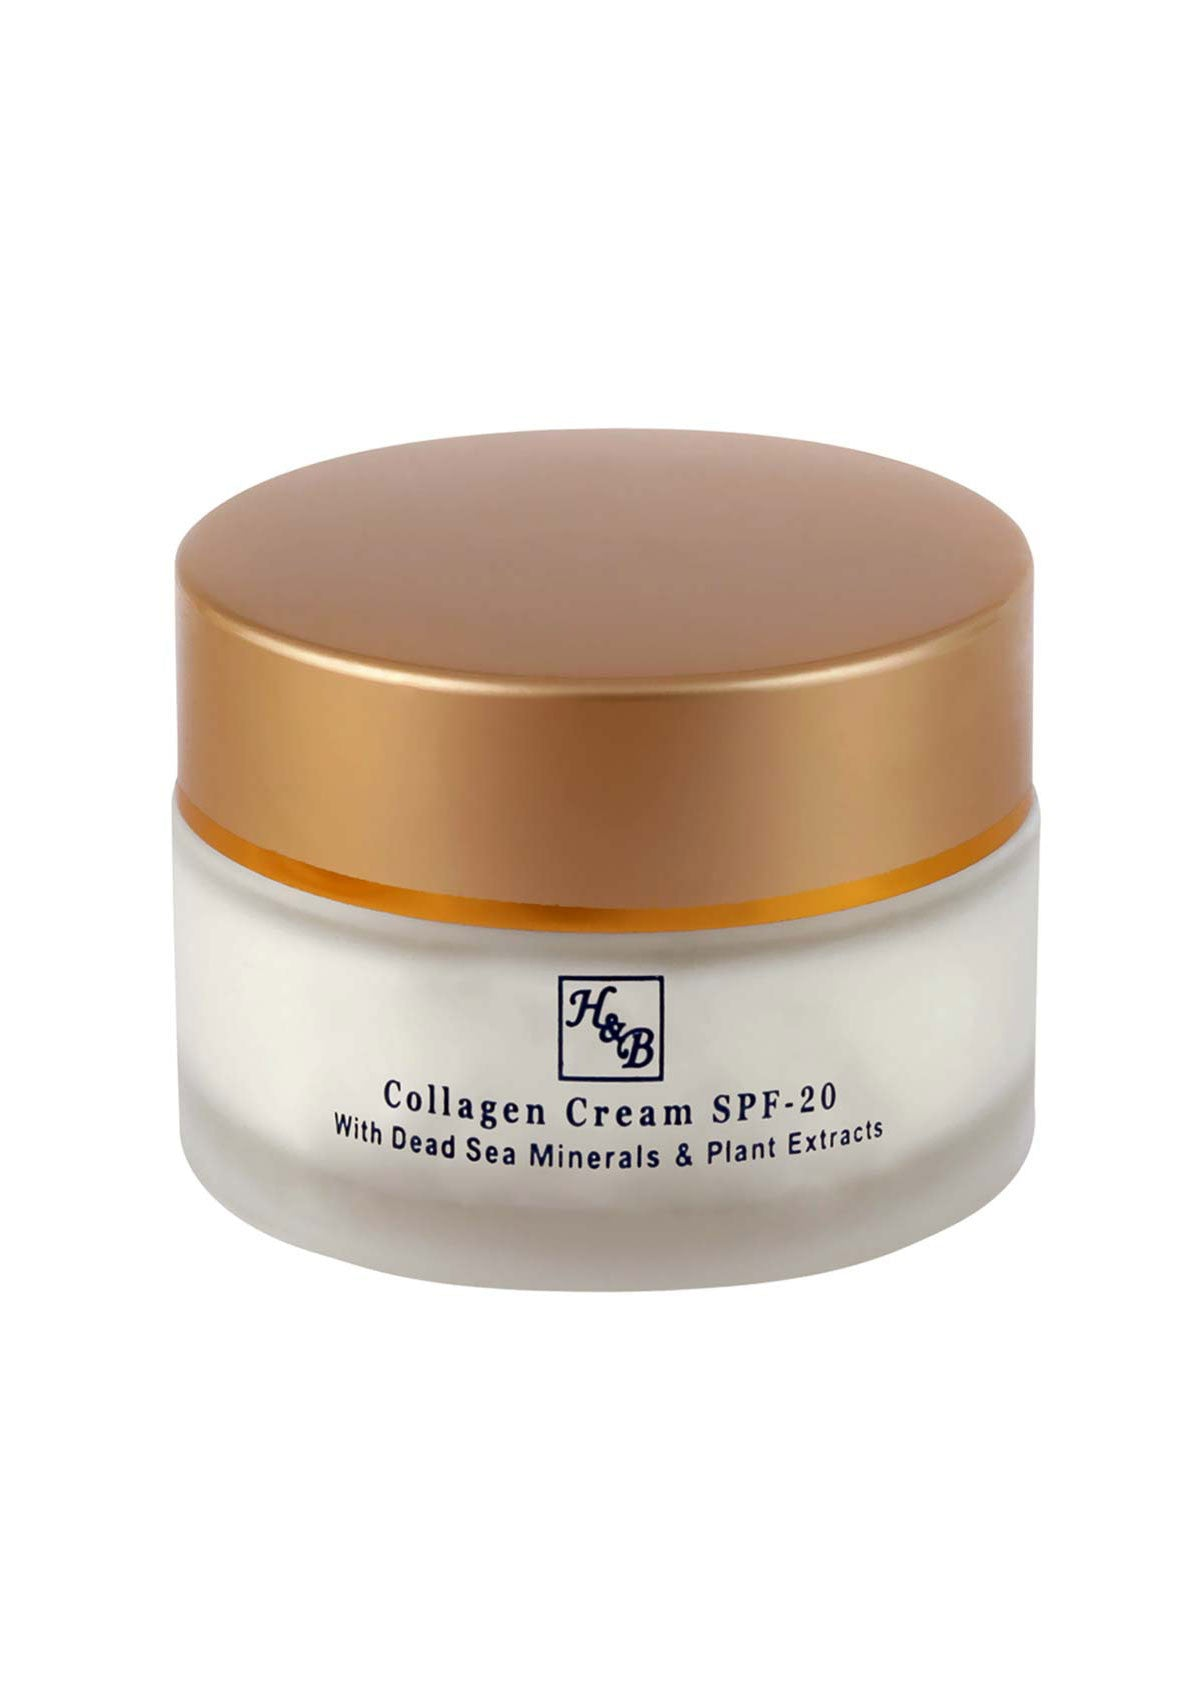 Health & Beauty - Collagen Cream SPF-20 - DeadSeaShop.co.uk